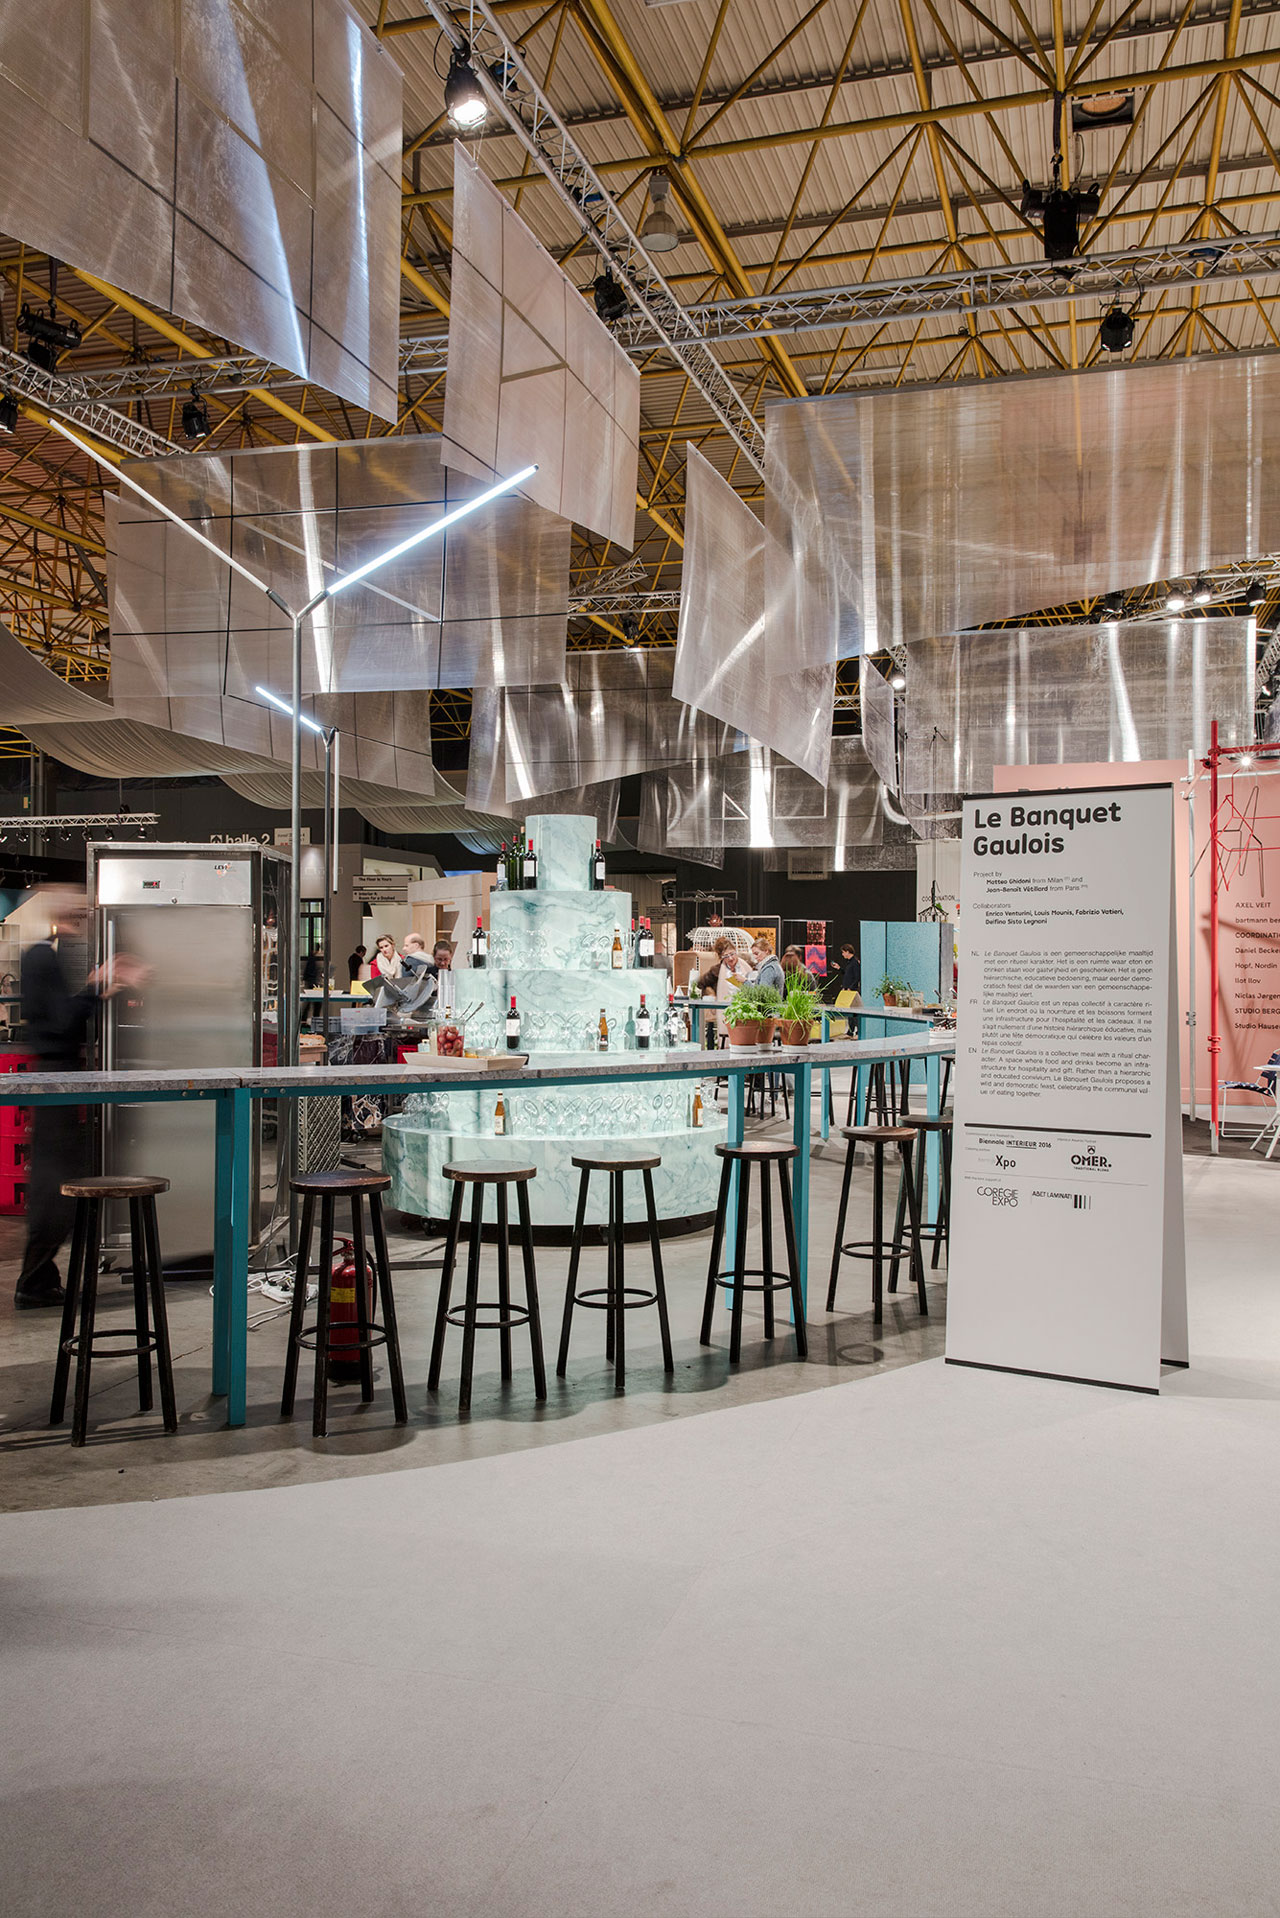 LE BANQUET GAULOIS: One of five award-winning bar/restaurants at Kortrijk Xpo. Concept by Matteo Ghidoni from Milan (Italy) and Jean-Benoît Vétillard from Paris (France). Photo © Piet Albert Goethals.